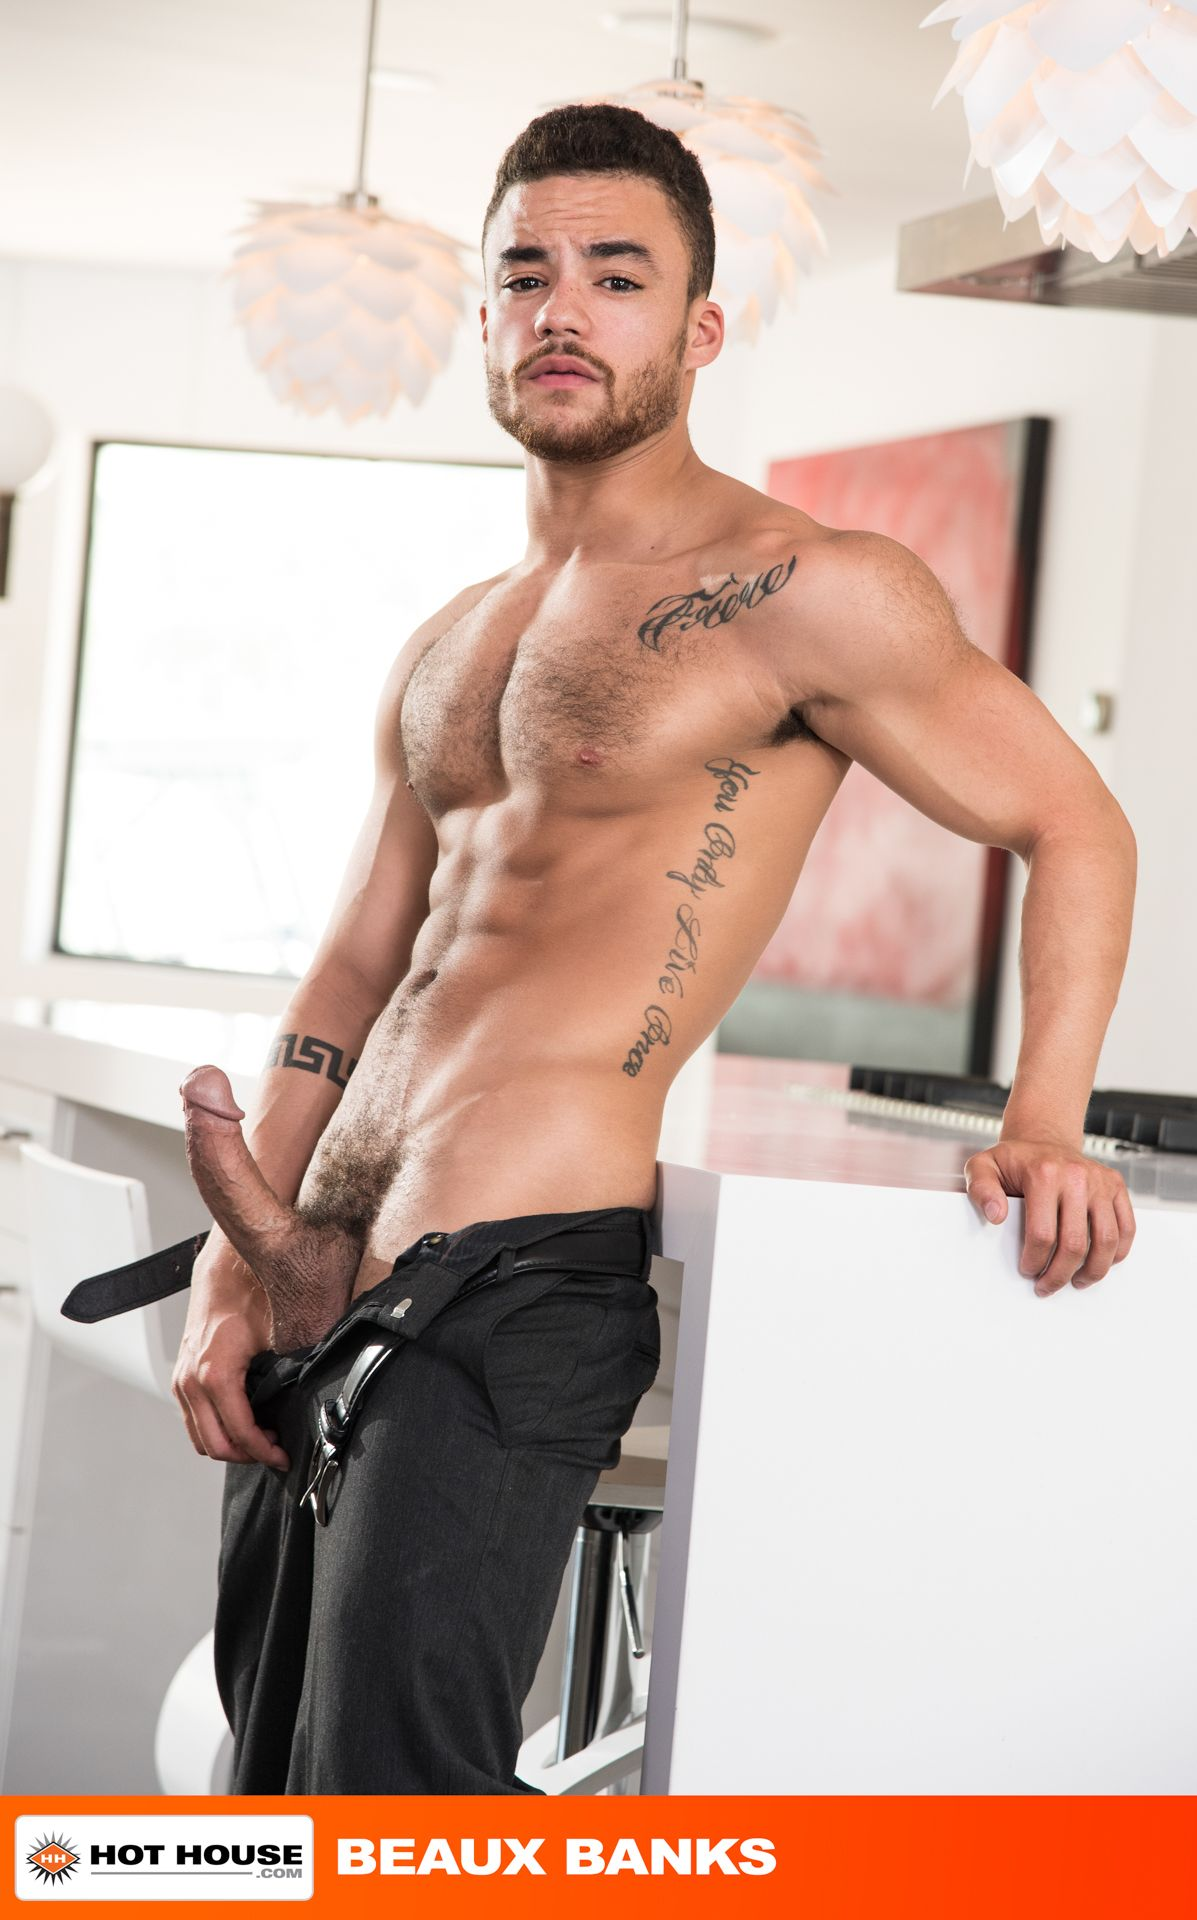 Hot and horny gay pornstar videos and free Beaux Banks